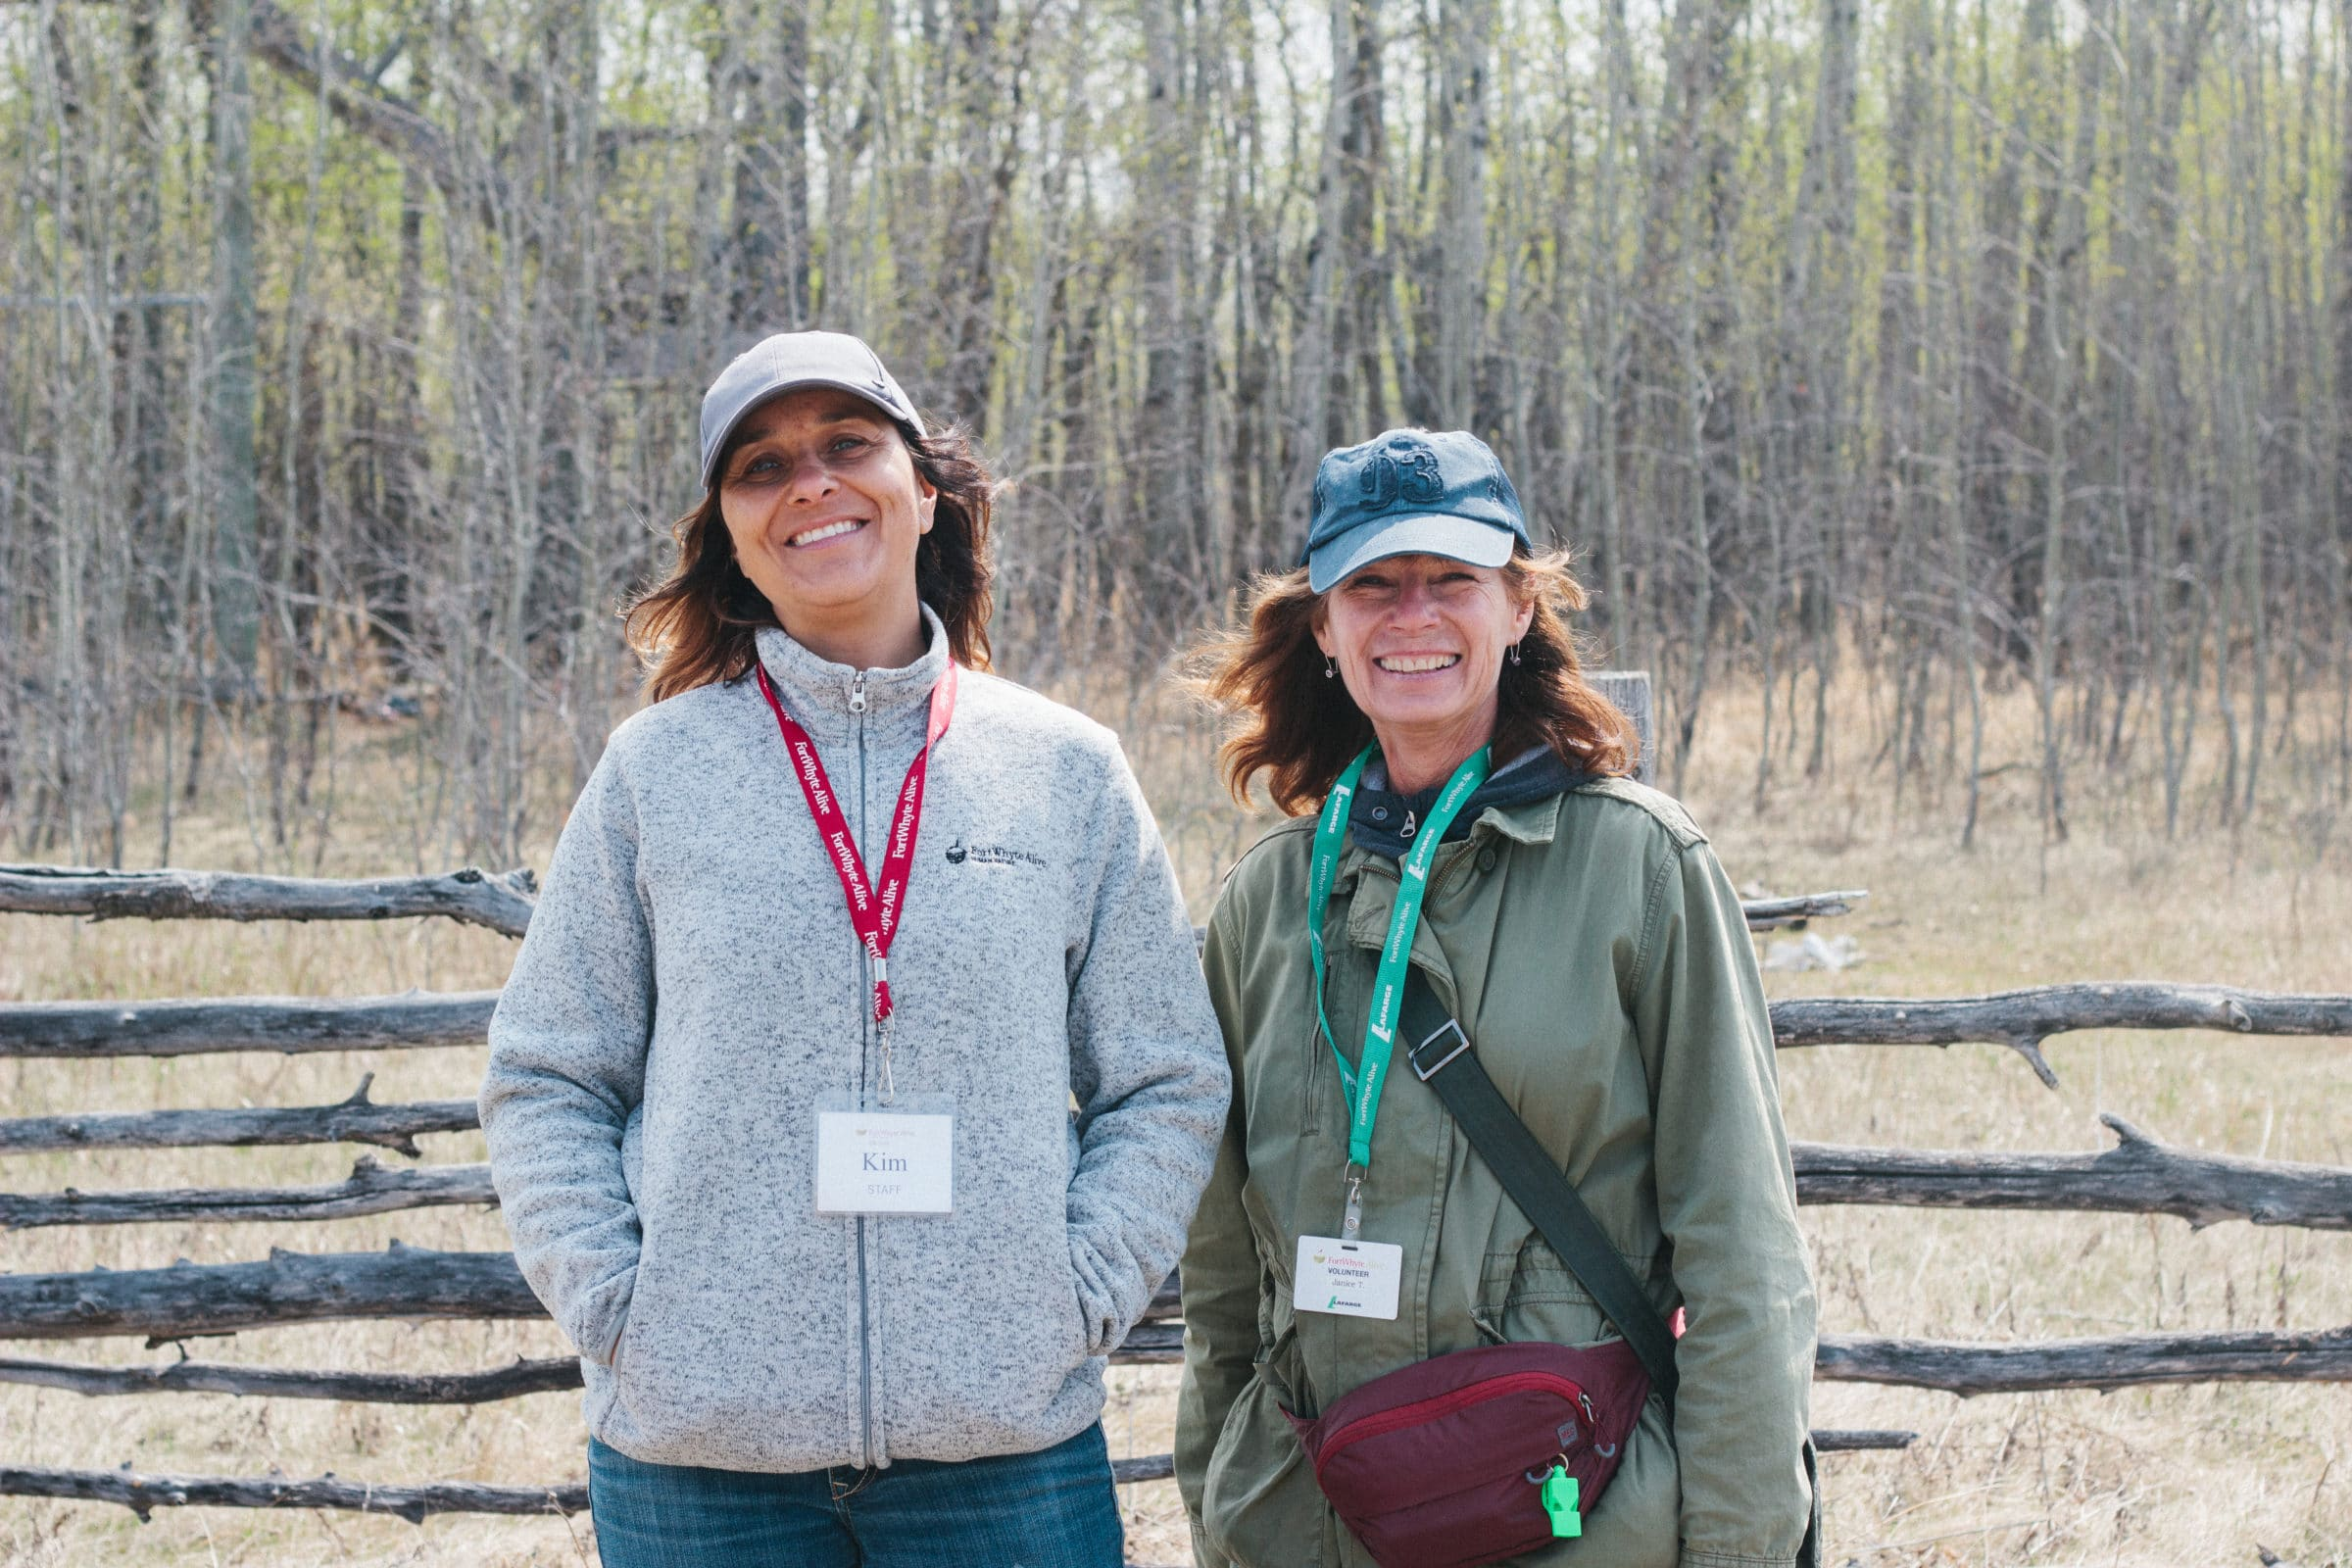 FortWhyte employee and volunteer smiling outdoors